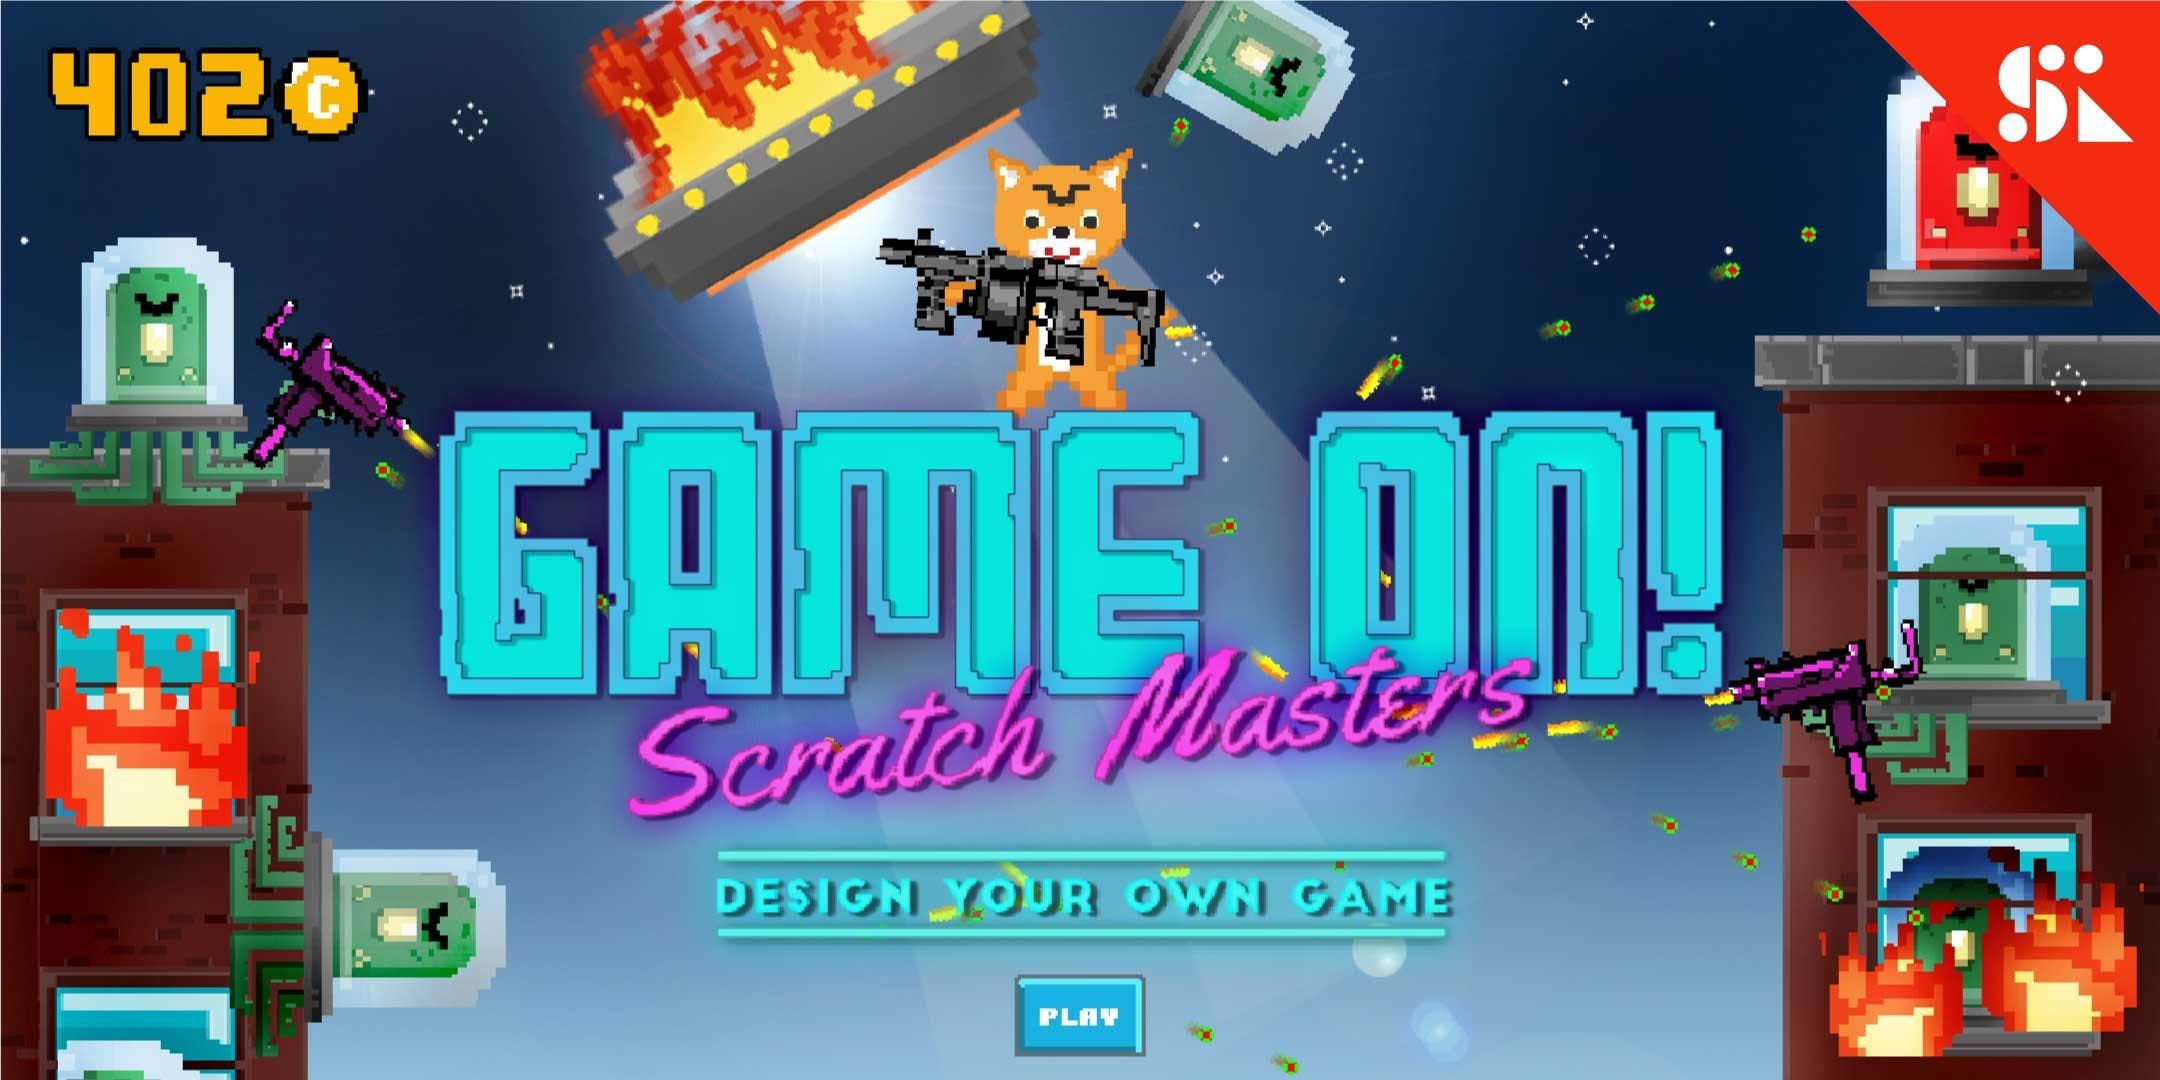 GAME ON Scratch Masters Design Your Own Game [Ages 10-13] 2 Jul - 6 Jul Holiday Camp (930AM)  Orchard